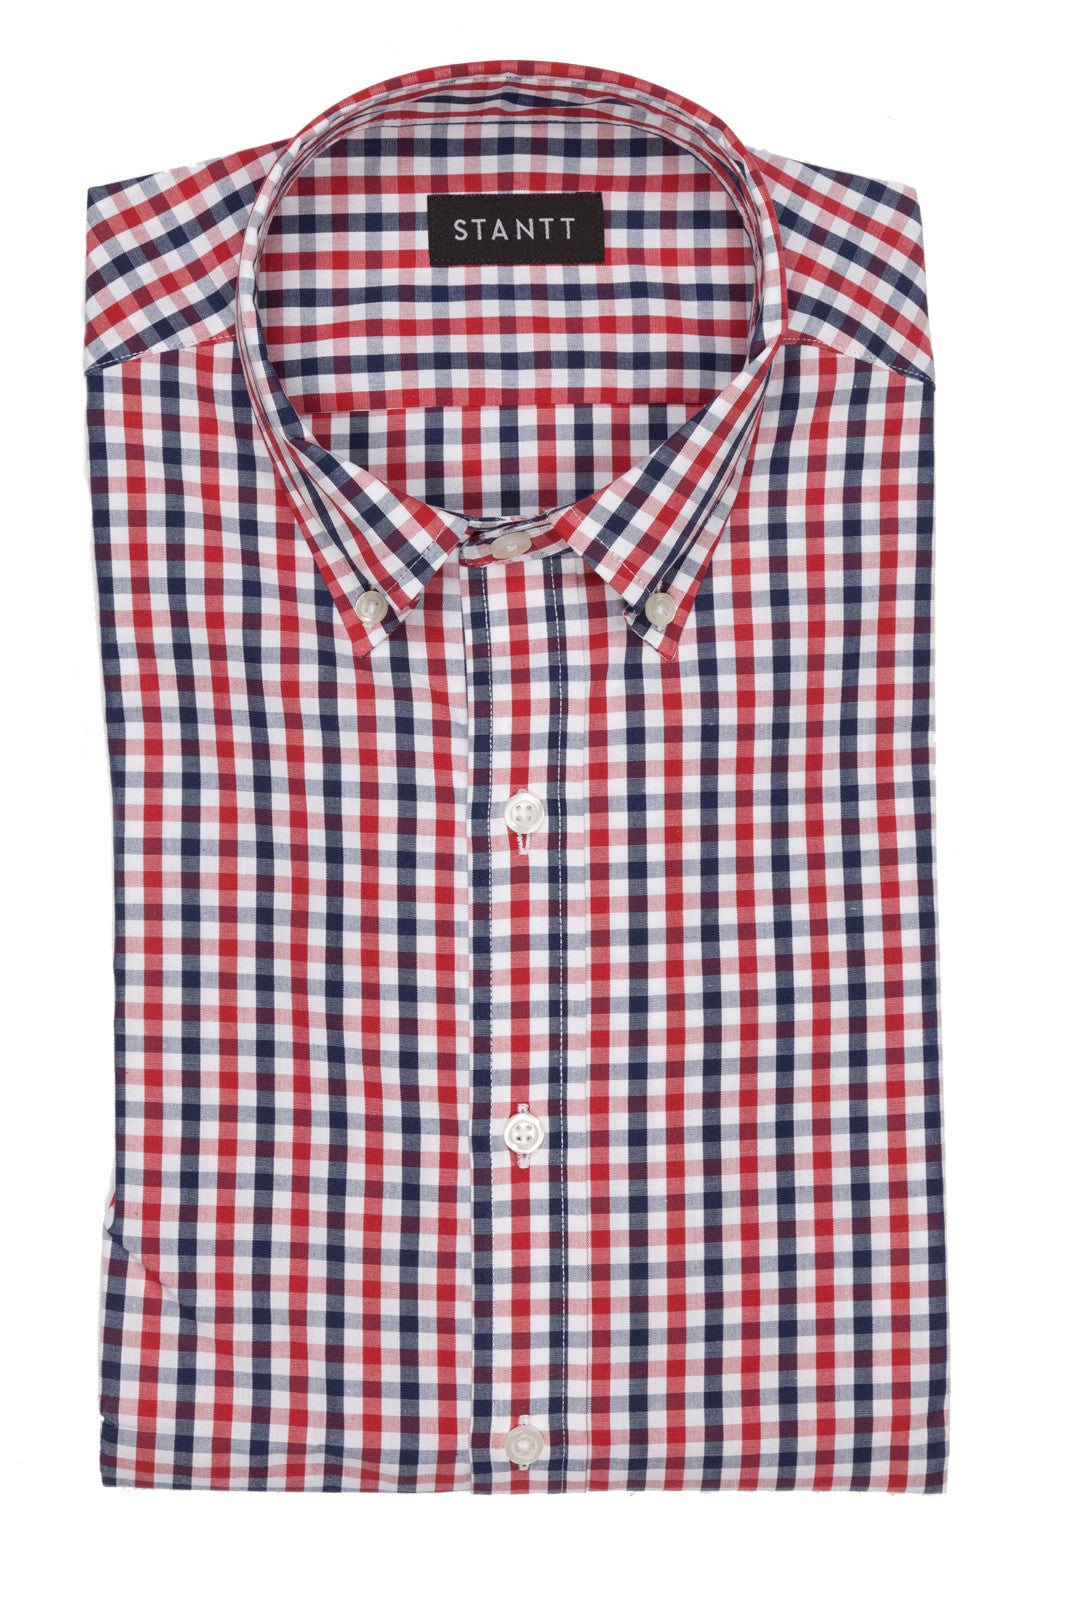 Cardinal Red and Navy Gingham: Cutaway Collar, French Cuff